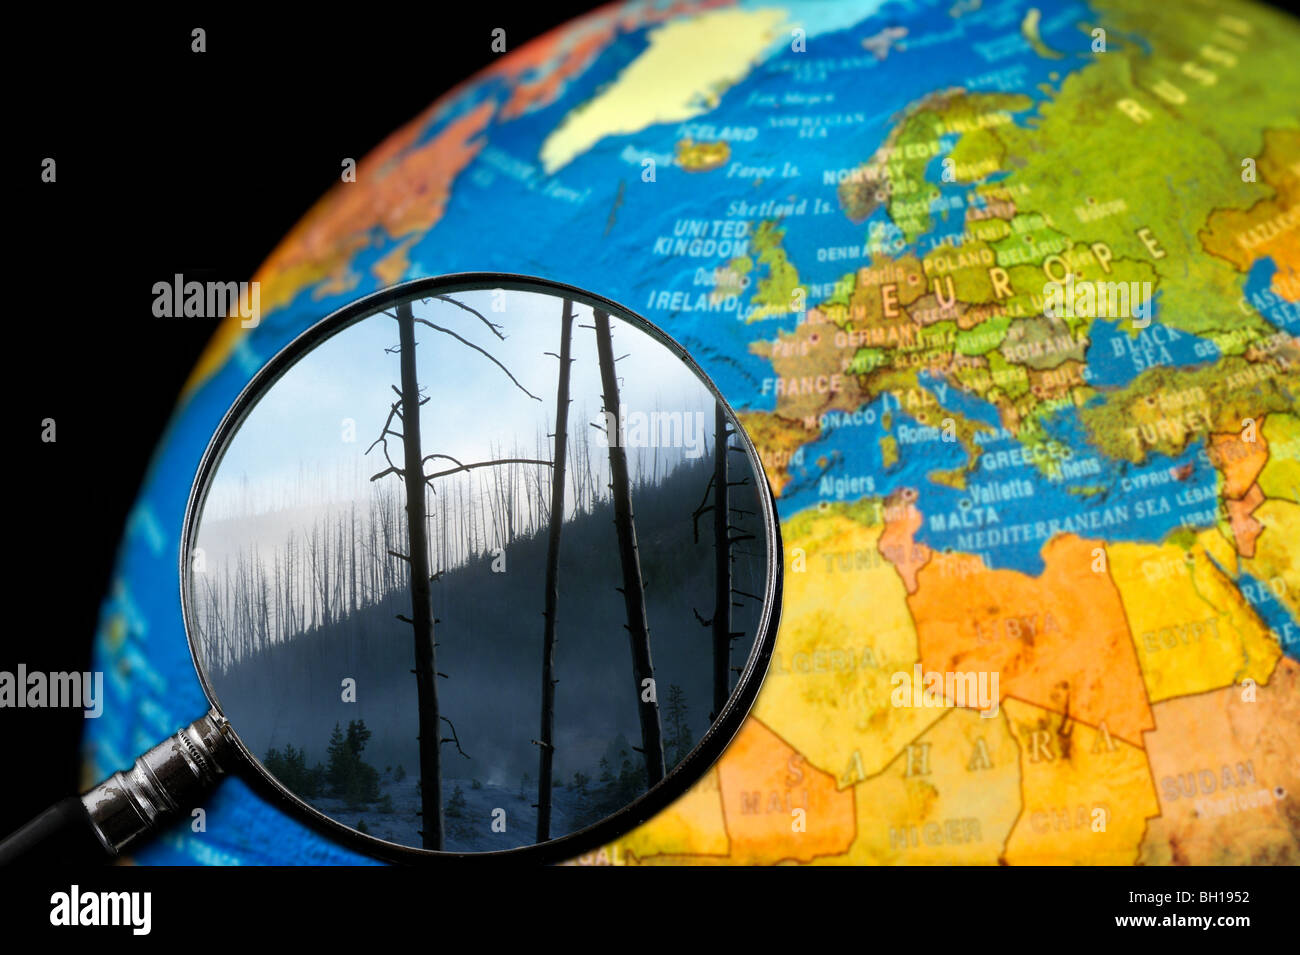 Burned trees after forest fire seen through magnifying glass held against illuminated terrestrial globe - Stock Image